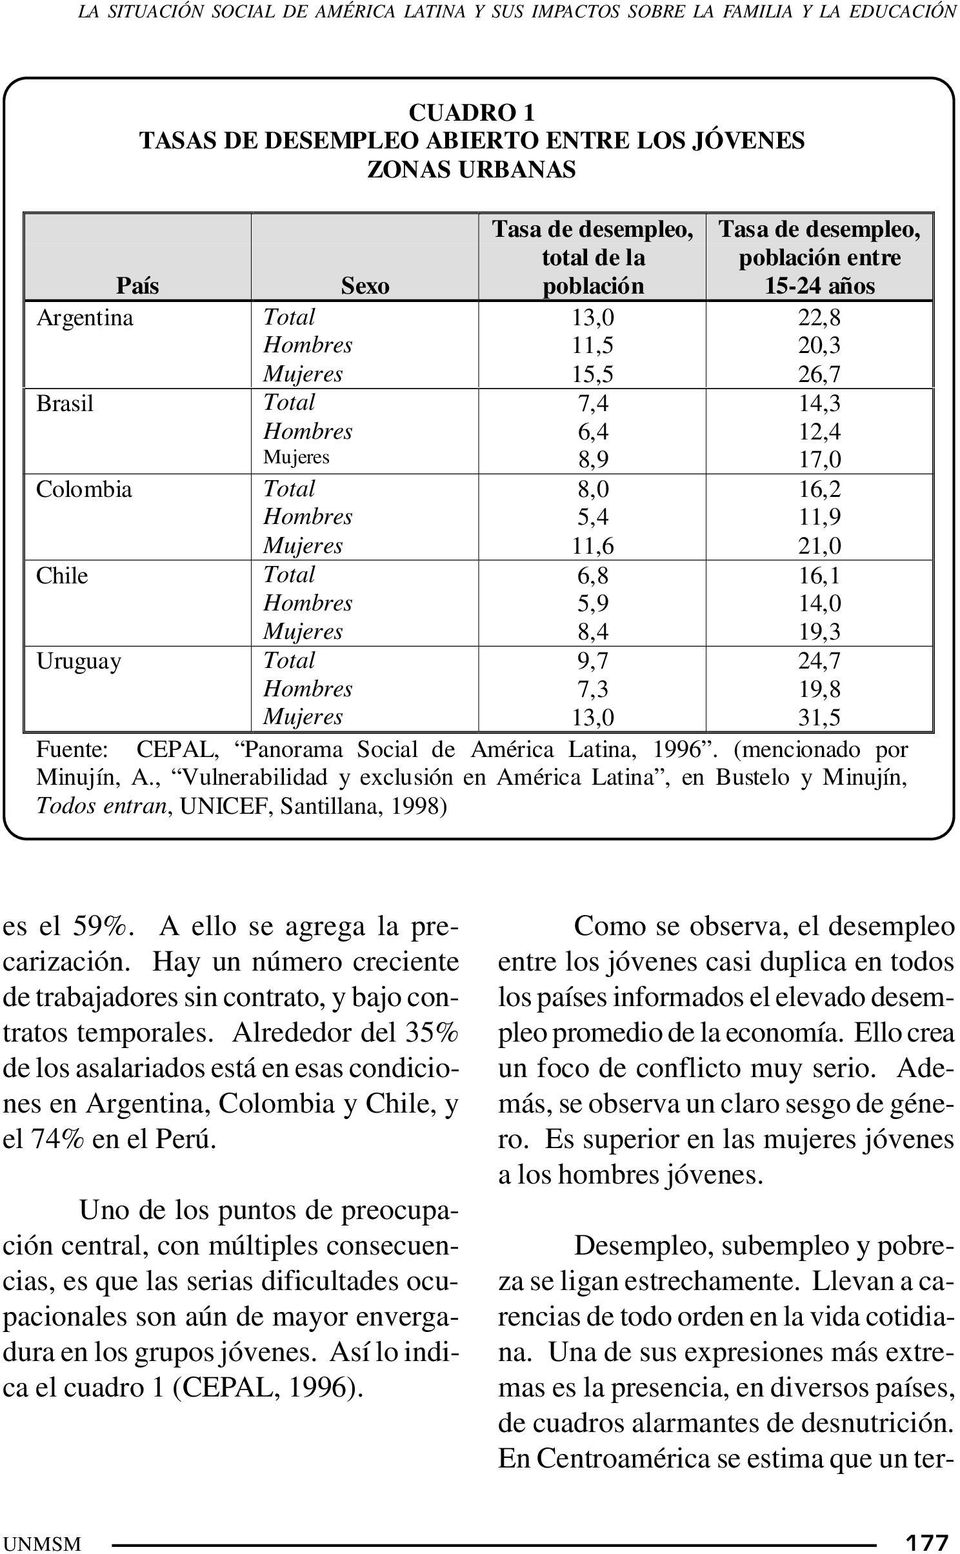 Mujeres 8,0 5,4 11,6 16,2 11,9 21,0 Chile Total Hombres Mujeres 6,8 5,9 8,4 16,1 14,0 19,3 Uruguay Total Hombres Mujeres 9,7 7,3 13,0 24,7 19,8 31,5 Fuente: CEPAL, Panorama Social de América Latina,